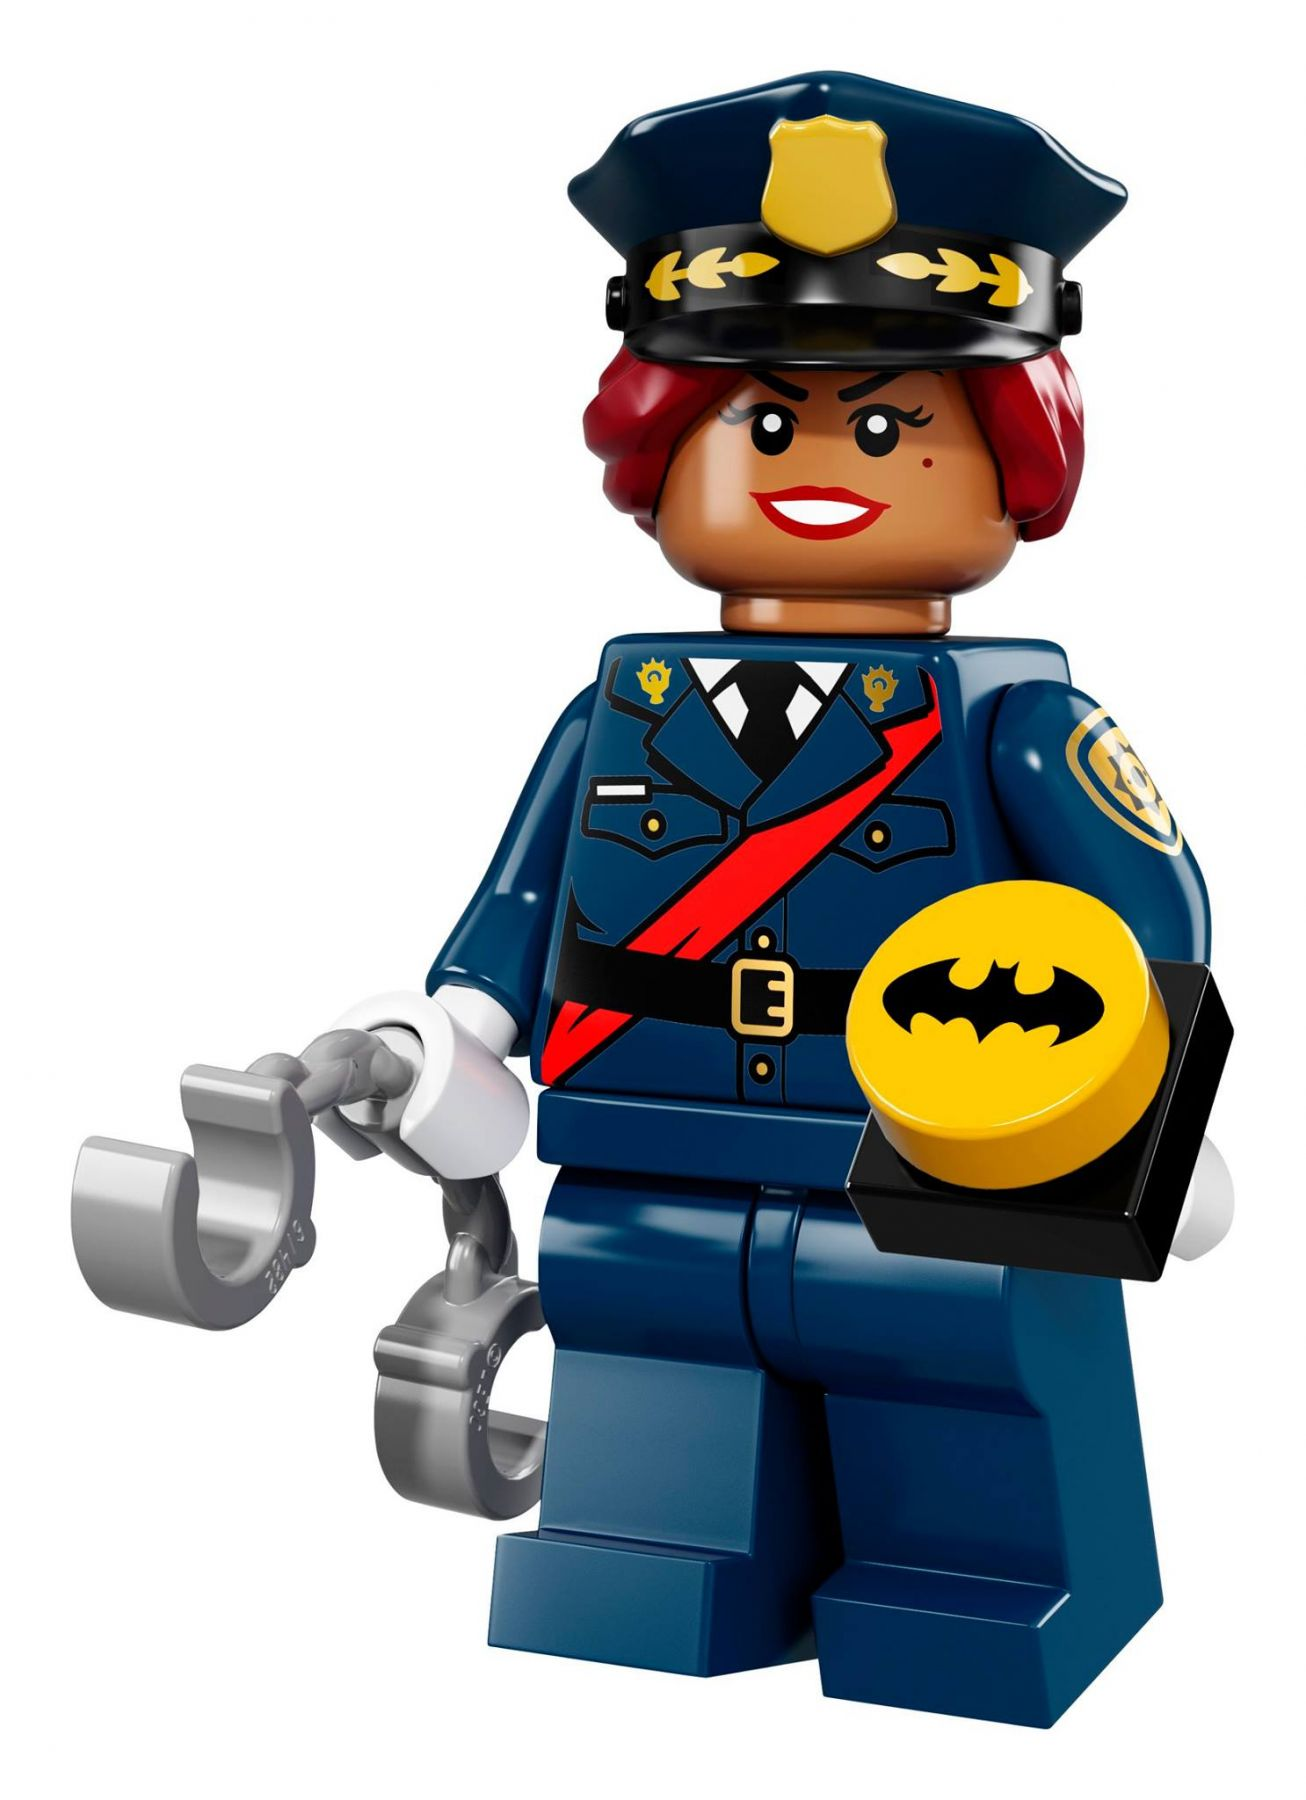 LEGO Collectable Minifigures 71017 LEGO® Batman Movie Minifiguren Serie 71017_LEGO_Batman_Movie_Minifiguren_Serie_figur16.jpg